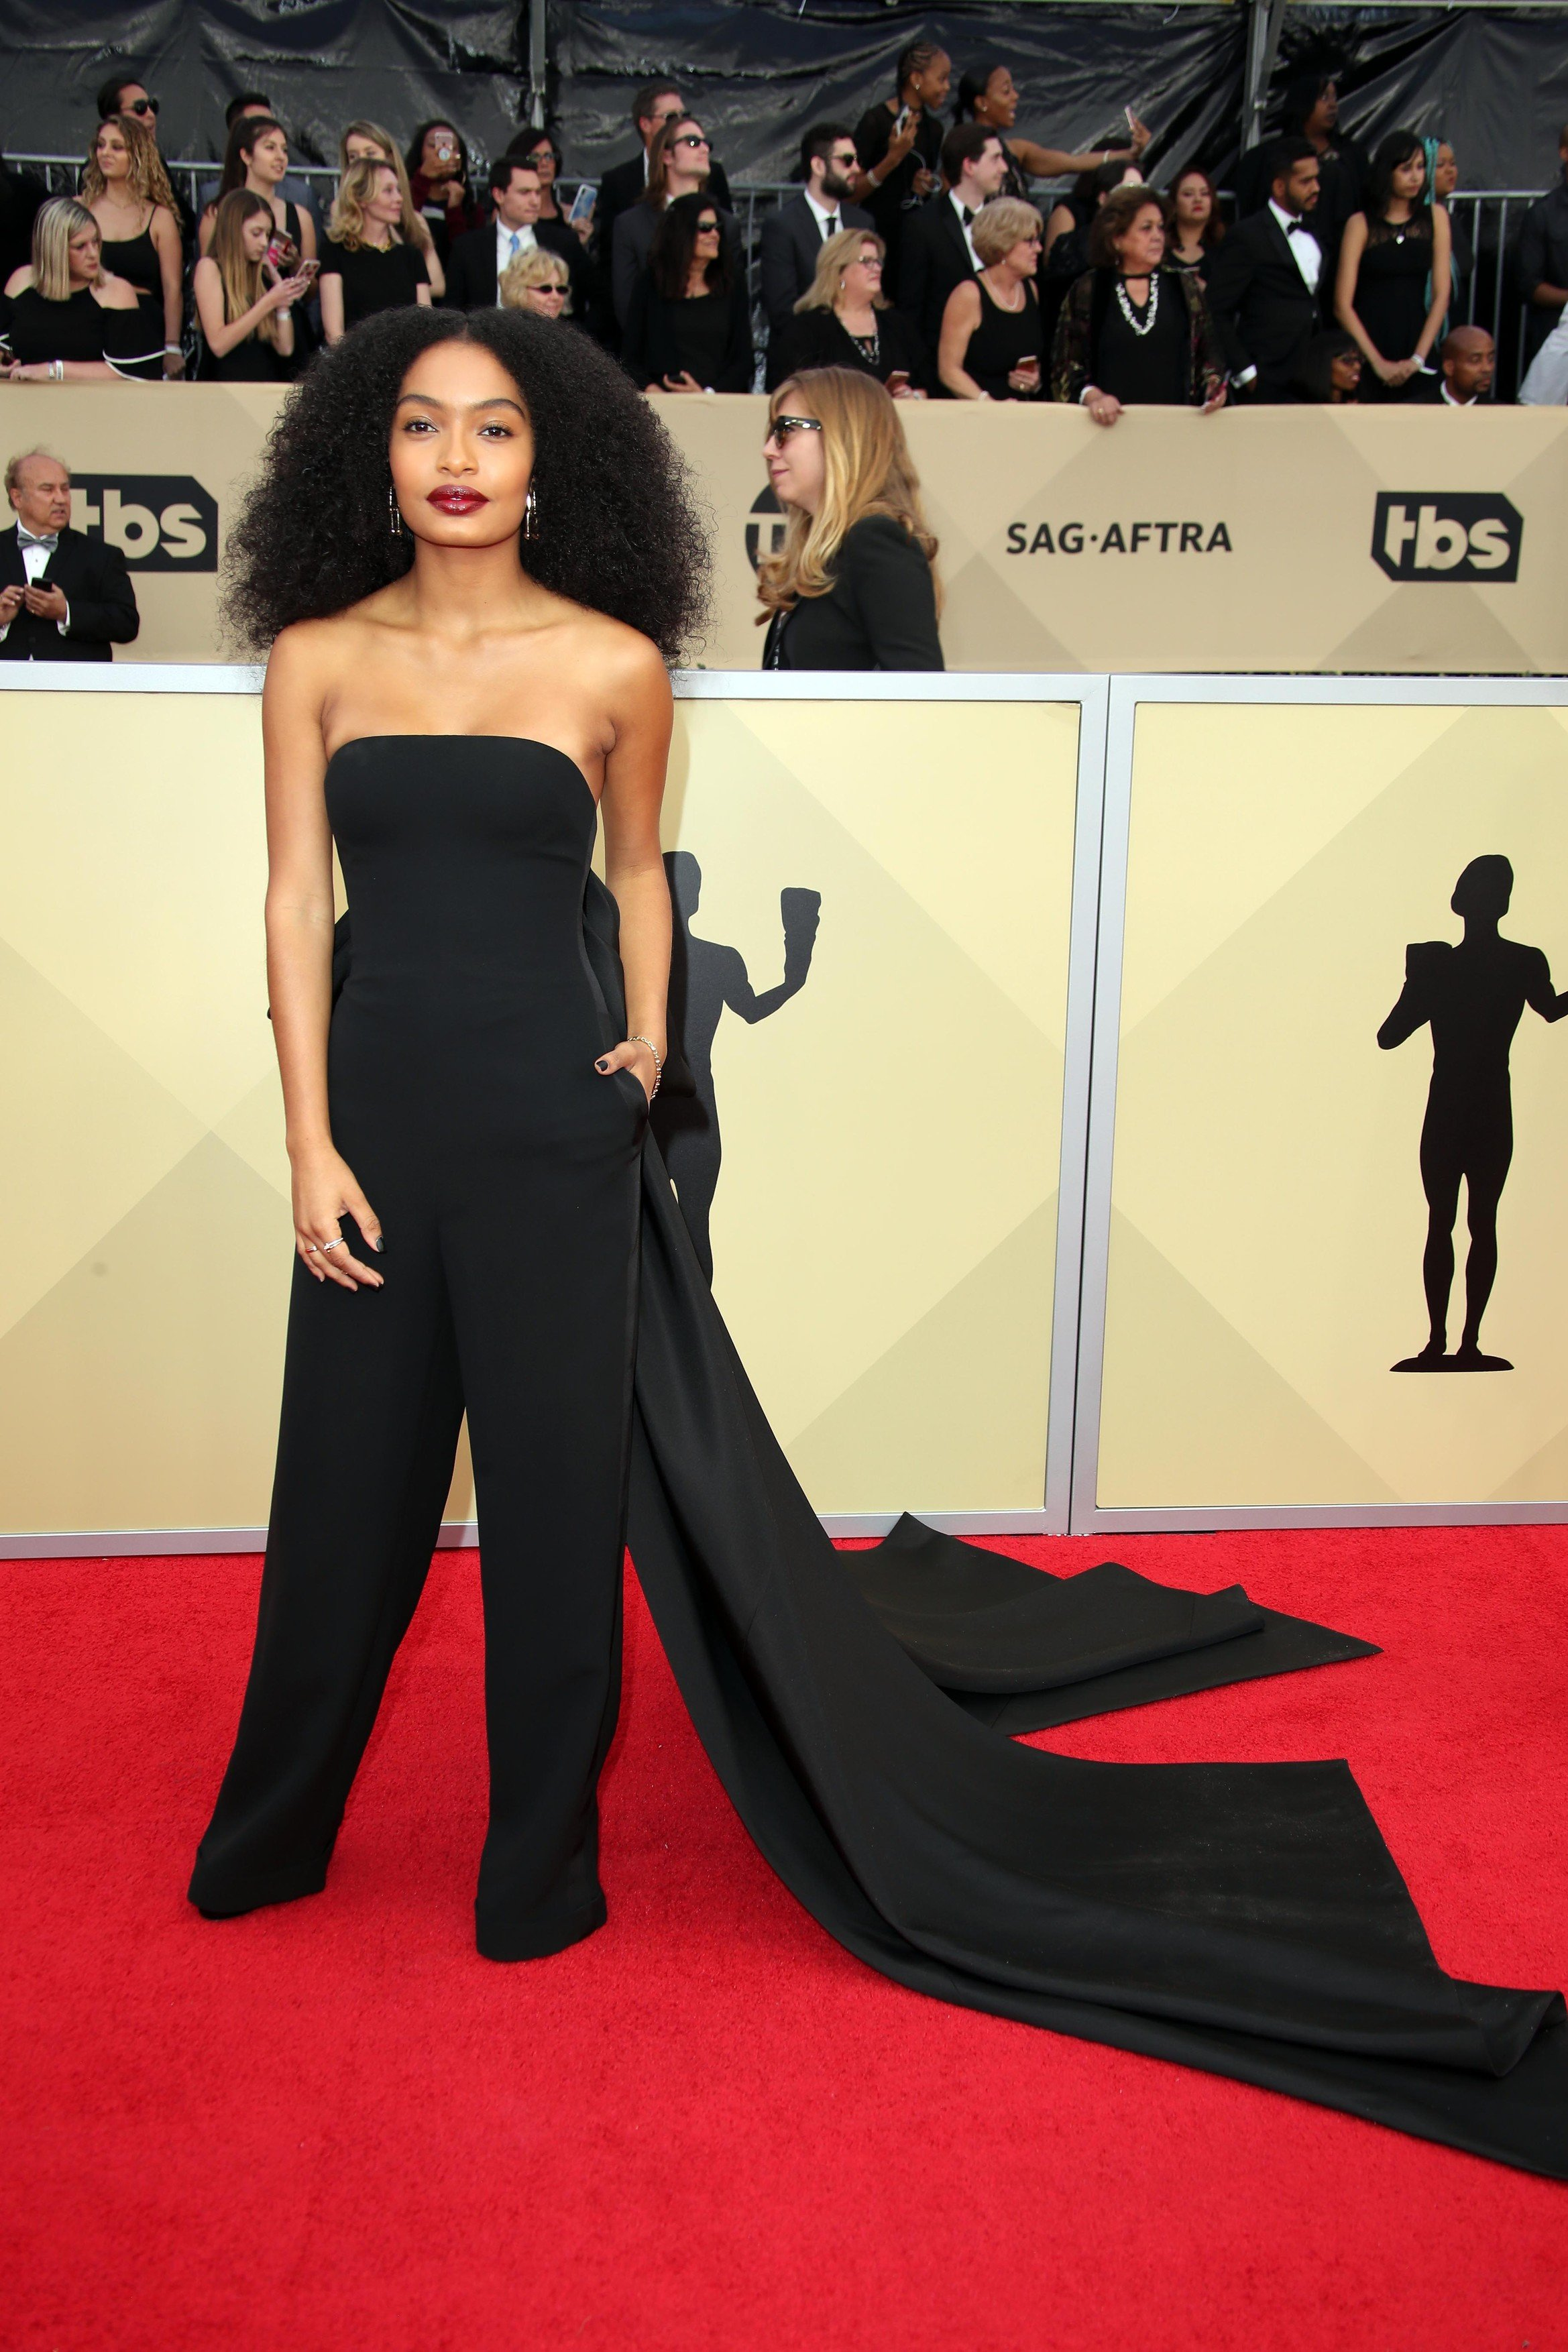 Jan 21, 2018; Los Angeles, CA, USA; Yara Shahidi arrives at the 24th annual Screen Actors Guild Awards at the Shrine Auditorium., Image: 360897260, License: Rights-managed, Restrictions: *** World Rights *** No Tabloids ***, Model Release: no, Credit line: Profimedia, SIPA USA